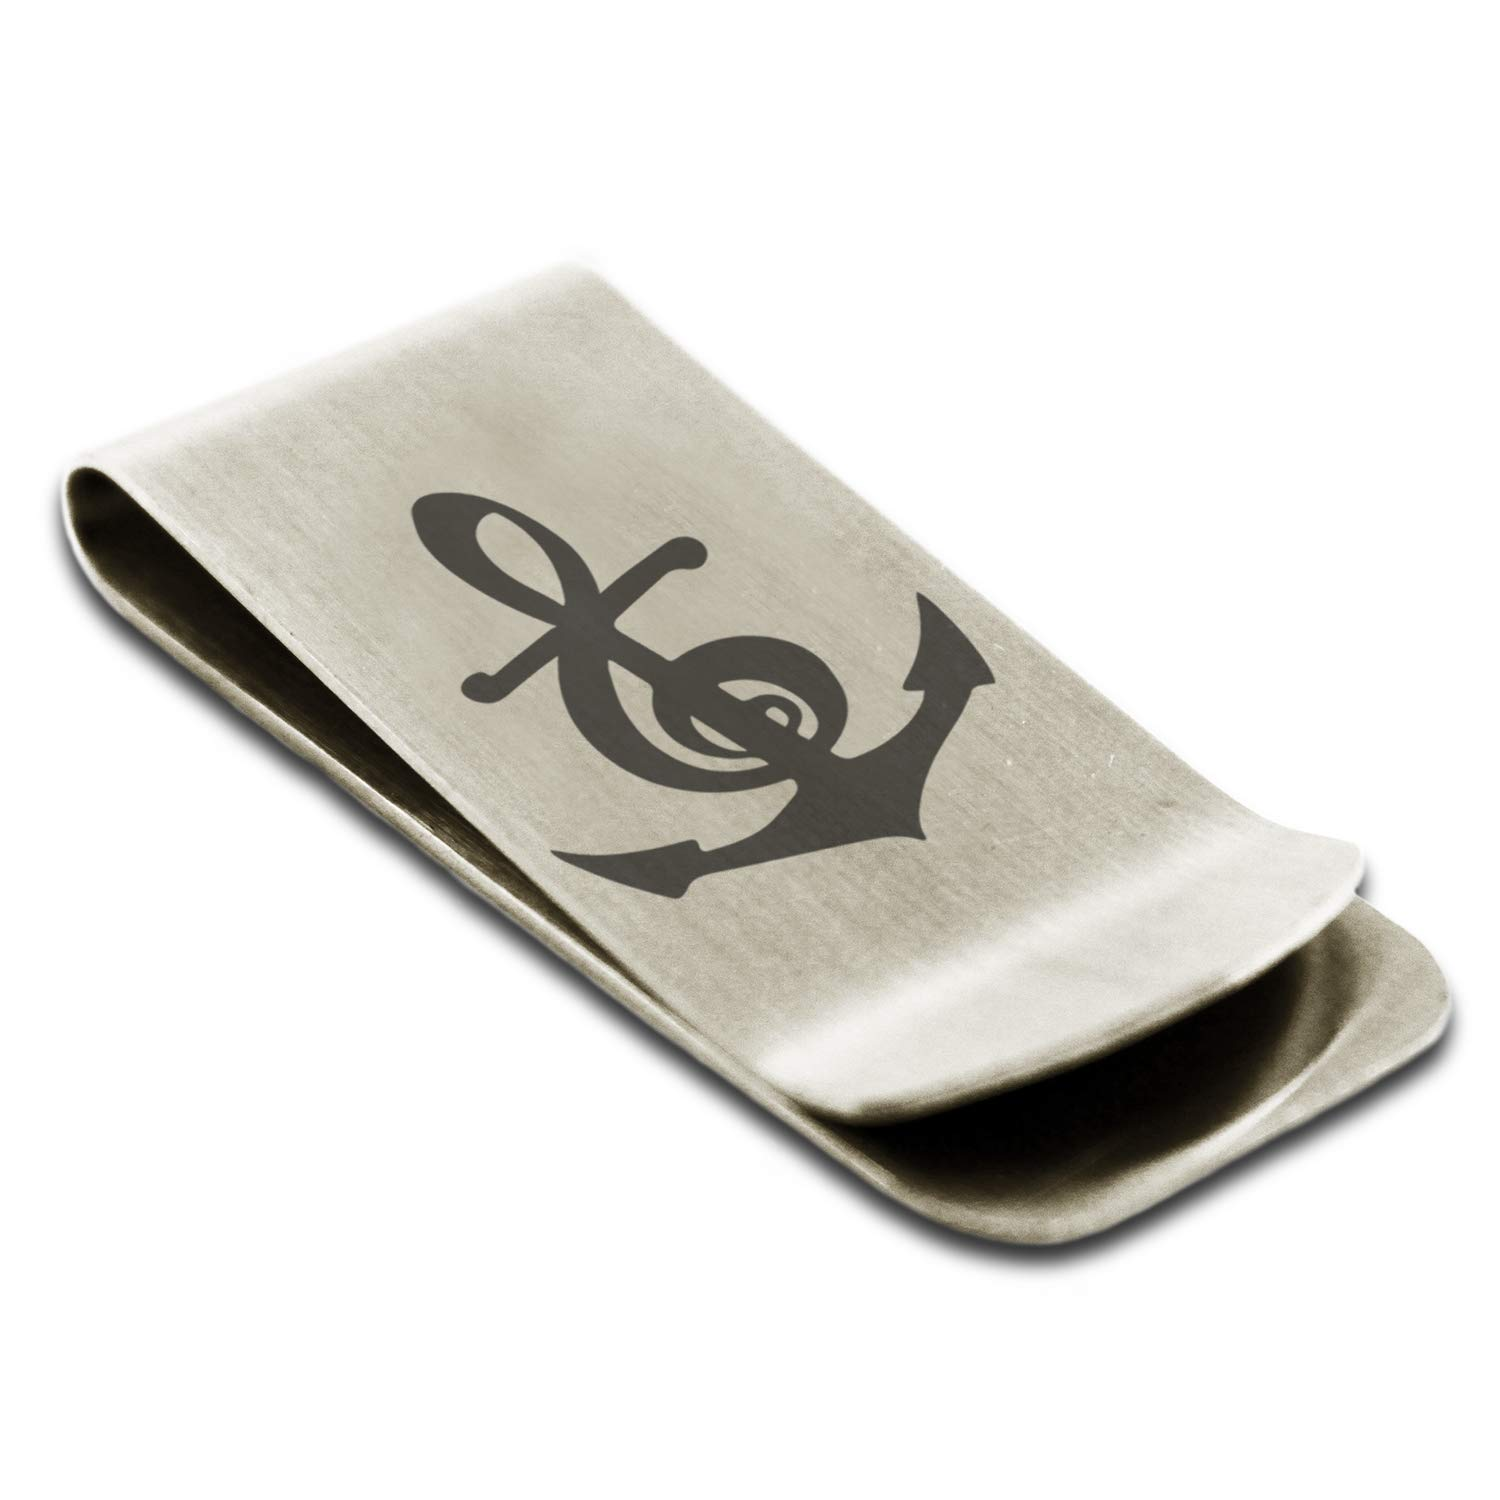 Stainless Steel Nautical Music Is My Anchor Treble Clef Engraved Money Clip Credit Card Holder